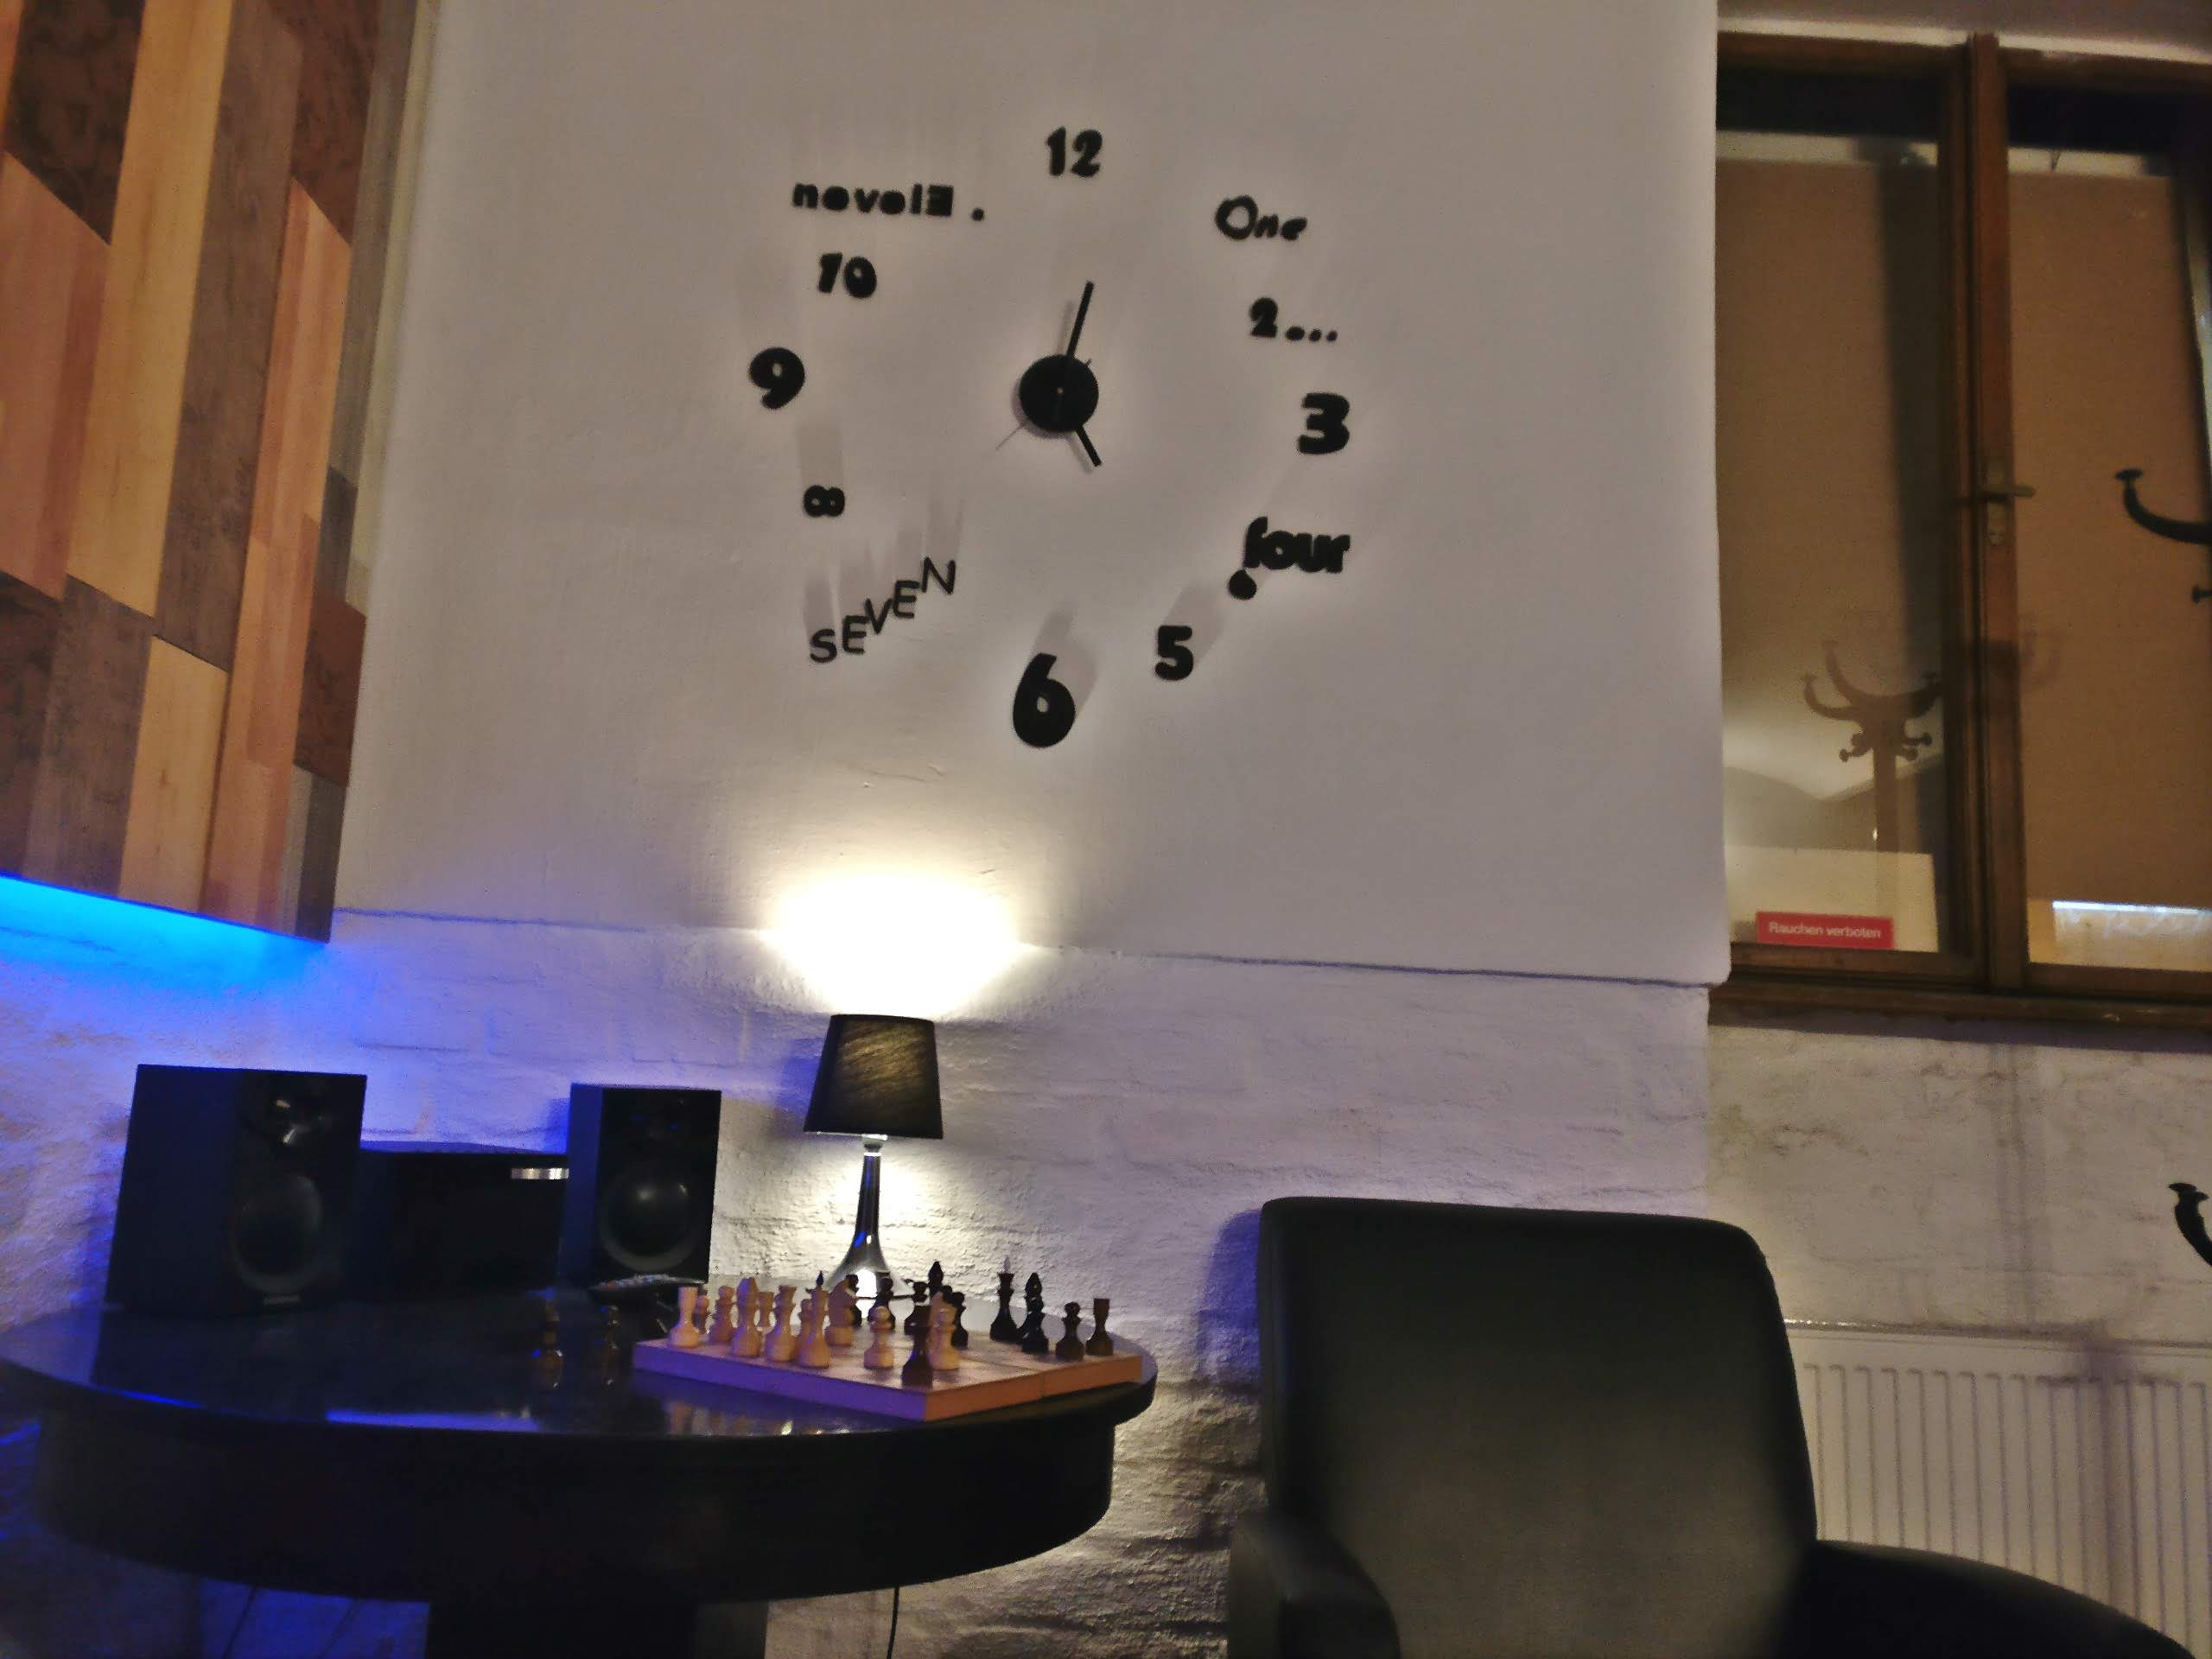 A clock and chess board inside the lobby area